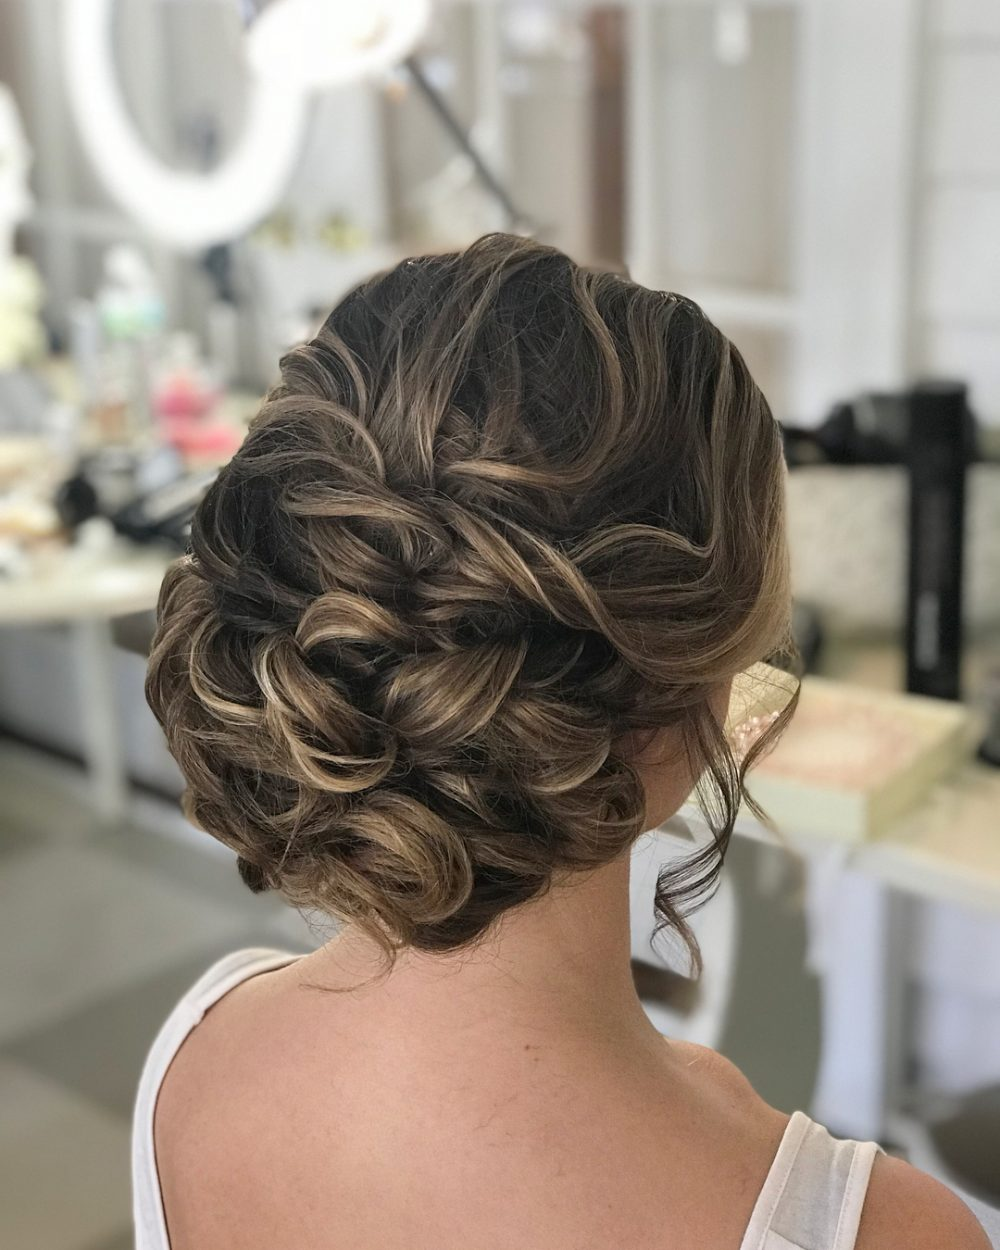 Wedding Hairstyles 2019: 17 Gorgeous Wedding Updos For Brides In 2019